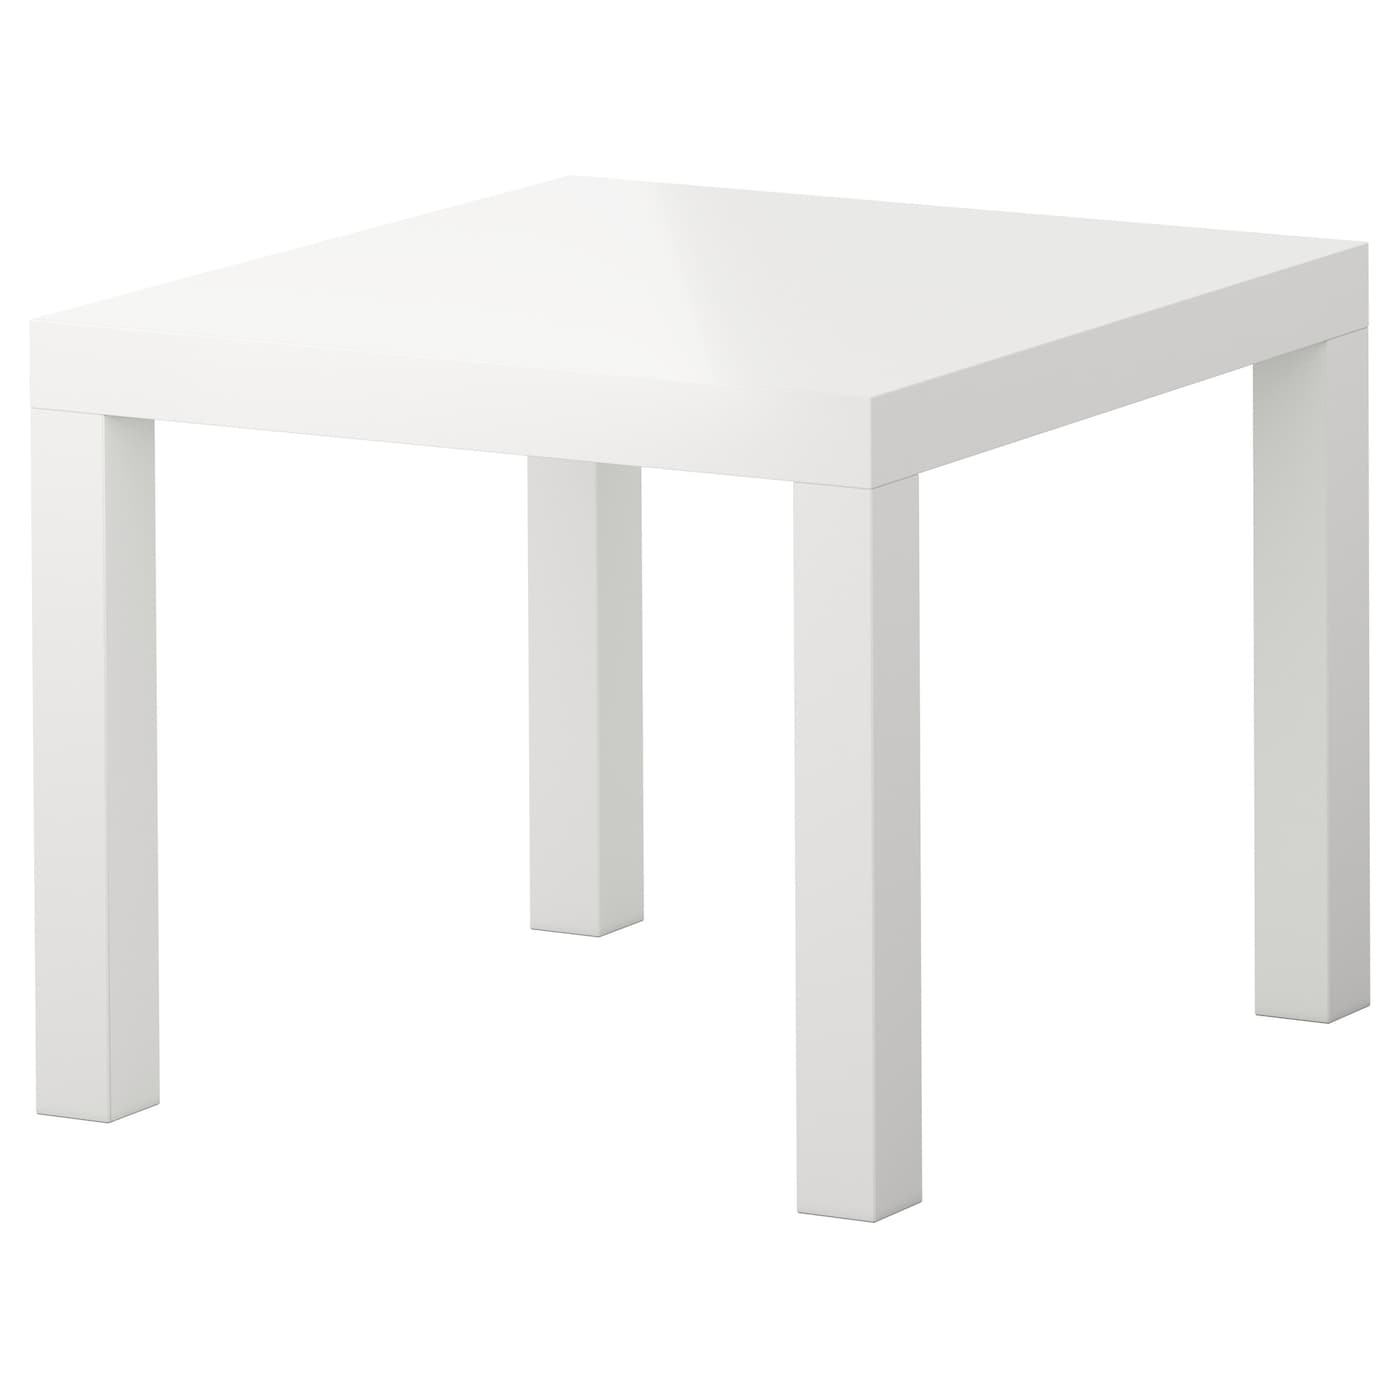 Attrayant IKEA LACK Side Table The High Gloss Surfaces Reflect Light And Give A  Vibrant Look